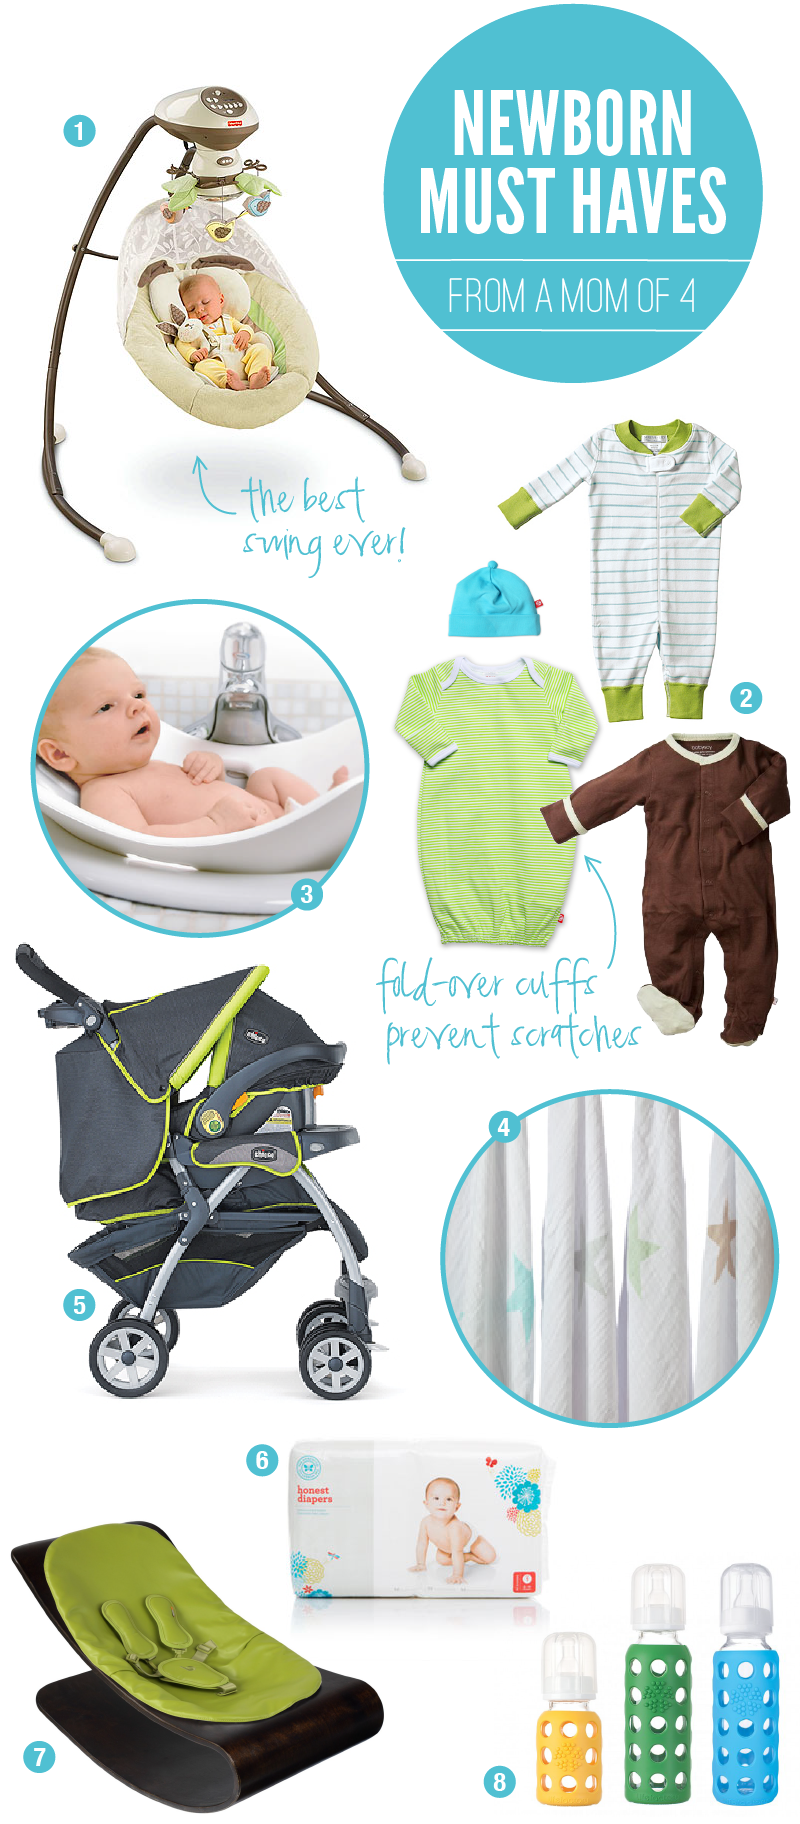 The ultimate list of essential Baby Gear for Newborns from a mom of four on PagingSupermom.com #babygear #newbornessentials #babies